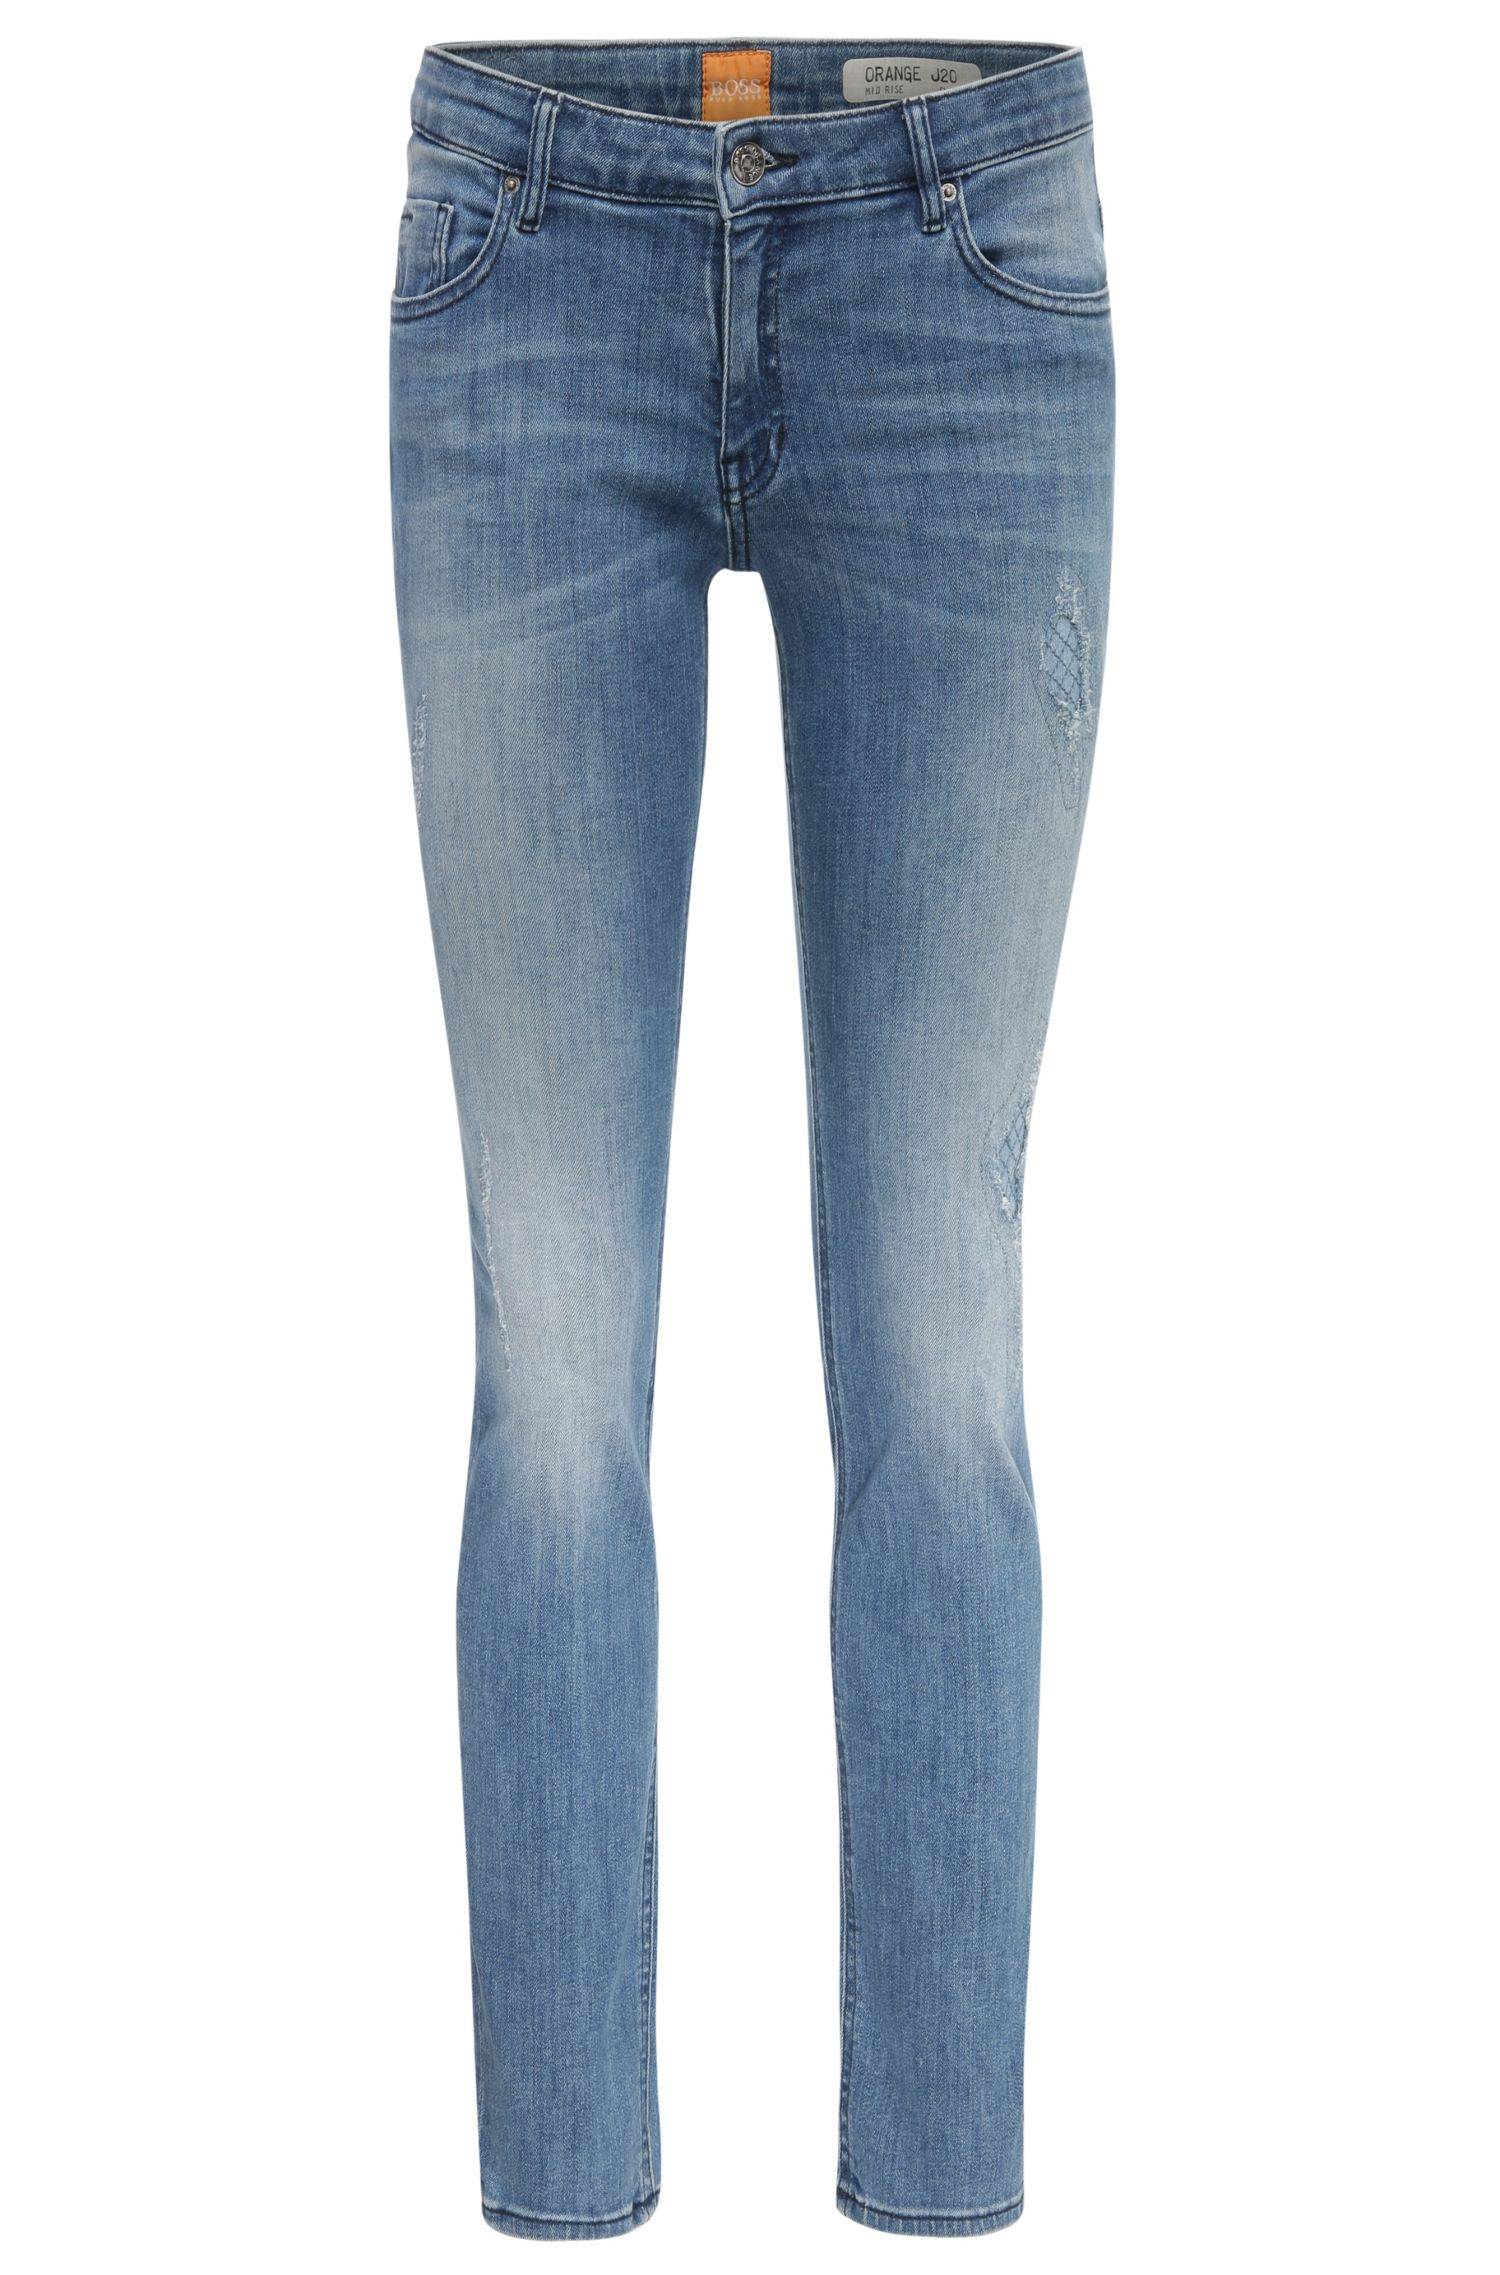 Slim-Fit Jeans aus Baumwolle mit Elasthan: ´Orange J20 Berlin`